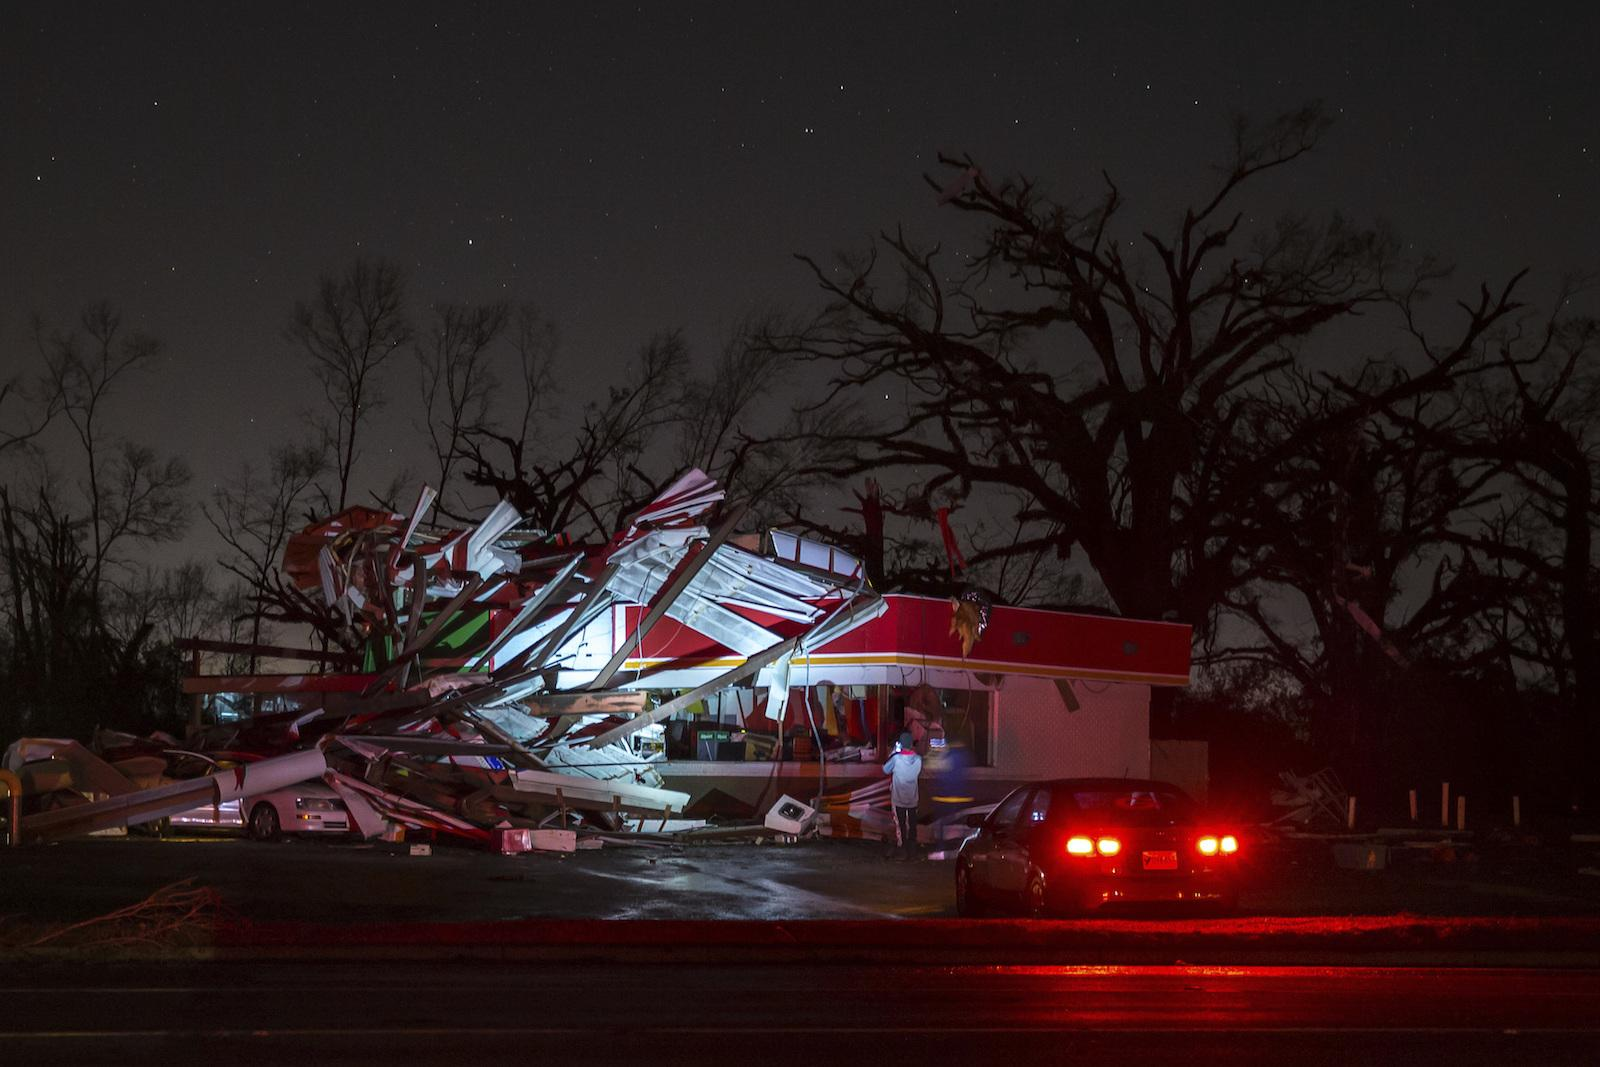 19 die amid apparent winter tornadoes other storms in south